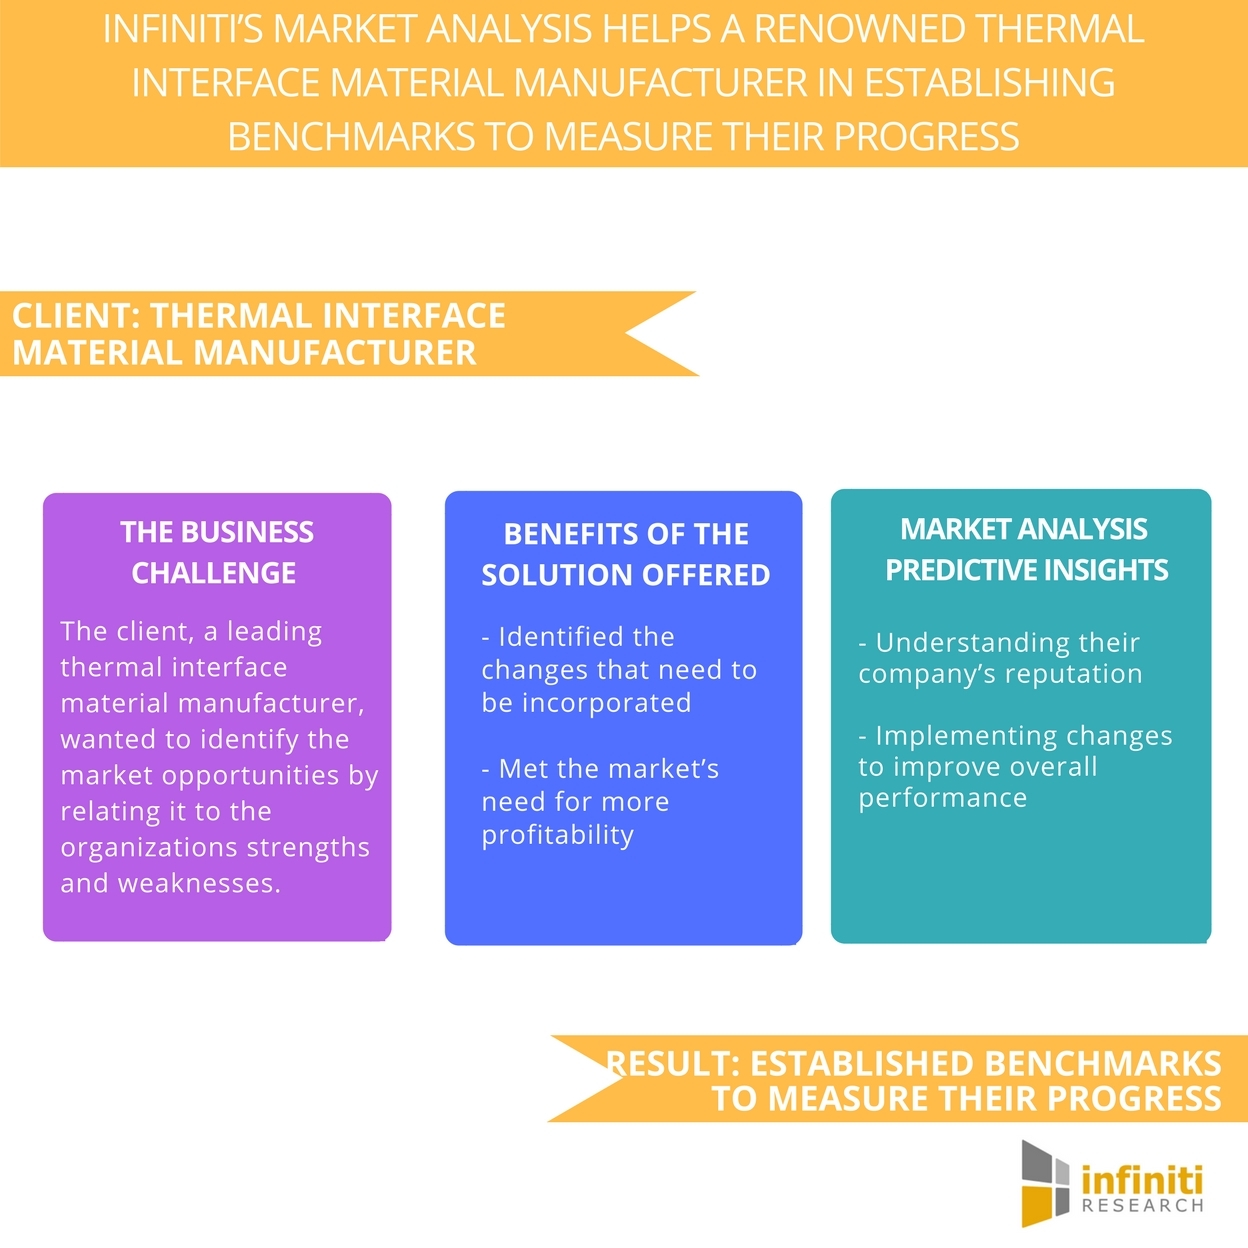 Market Analysis Case Study - Infiniti Research Helped a Renowned ...